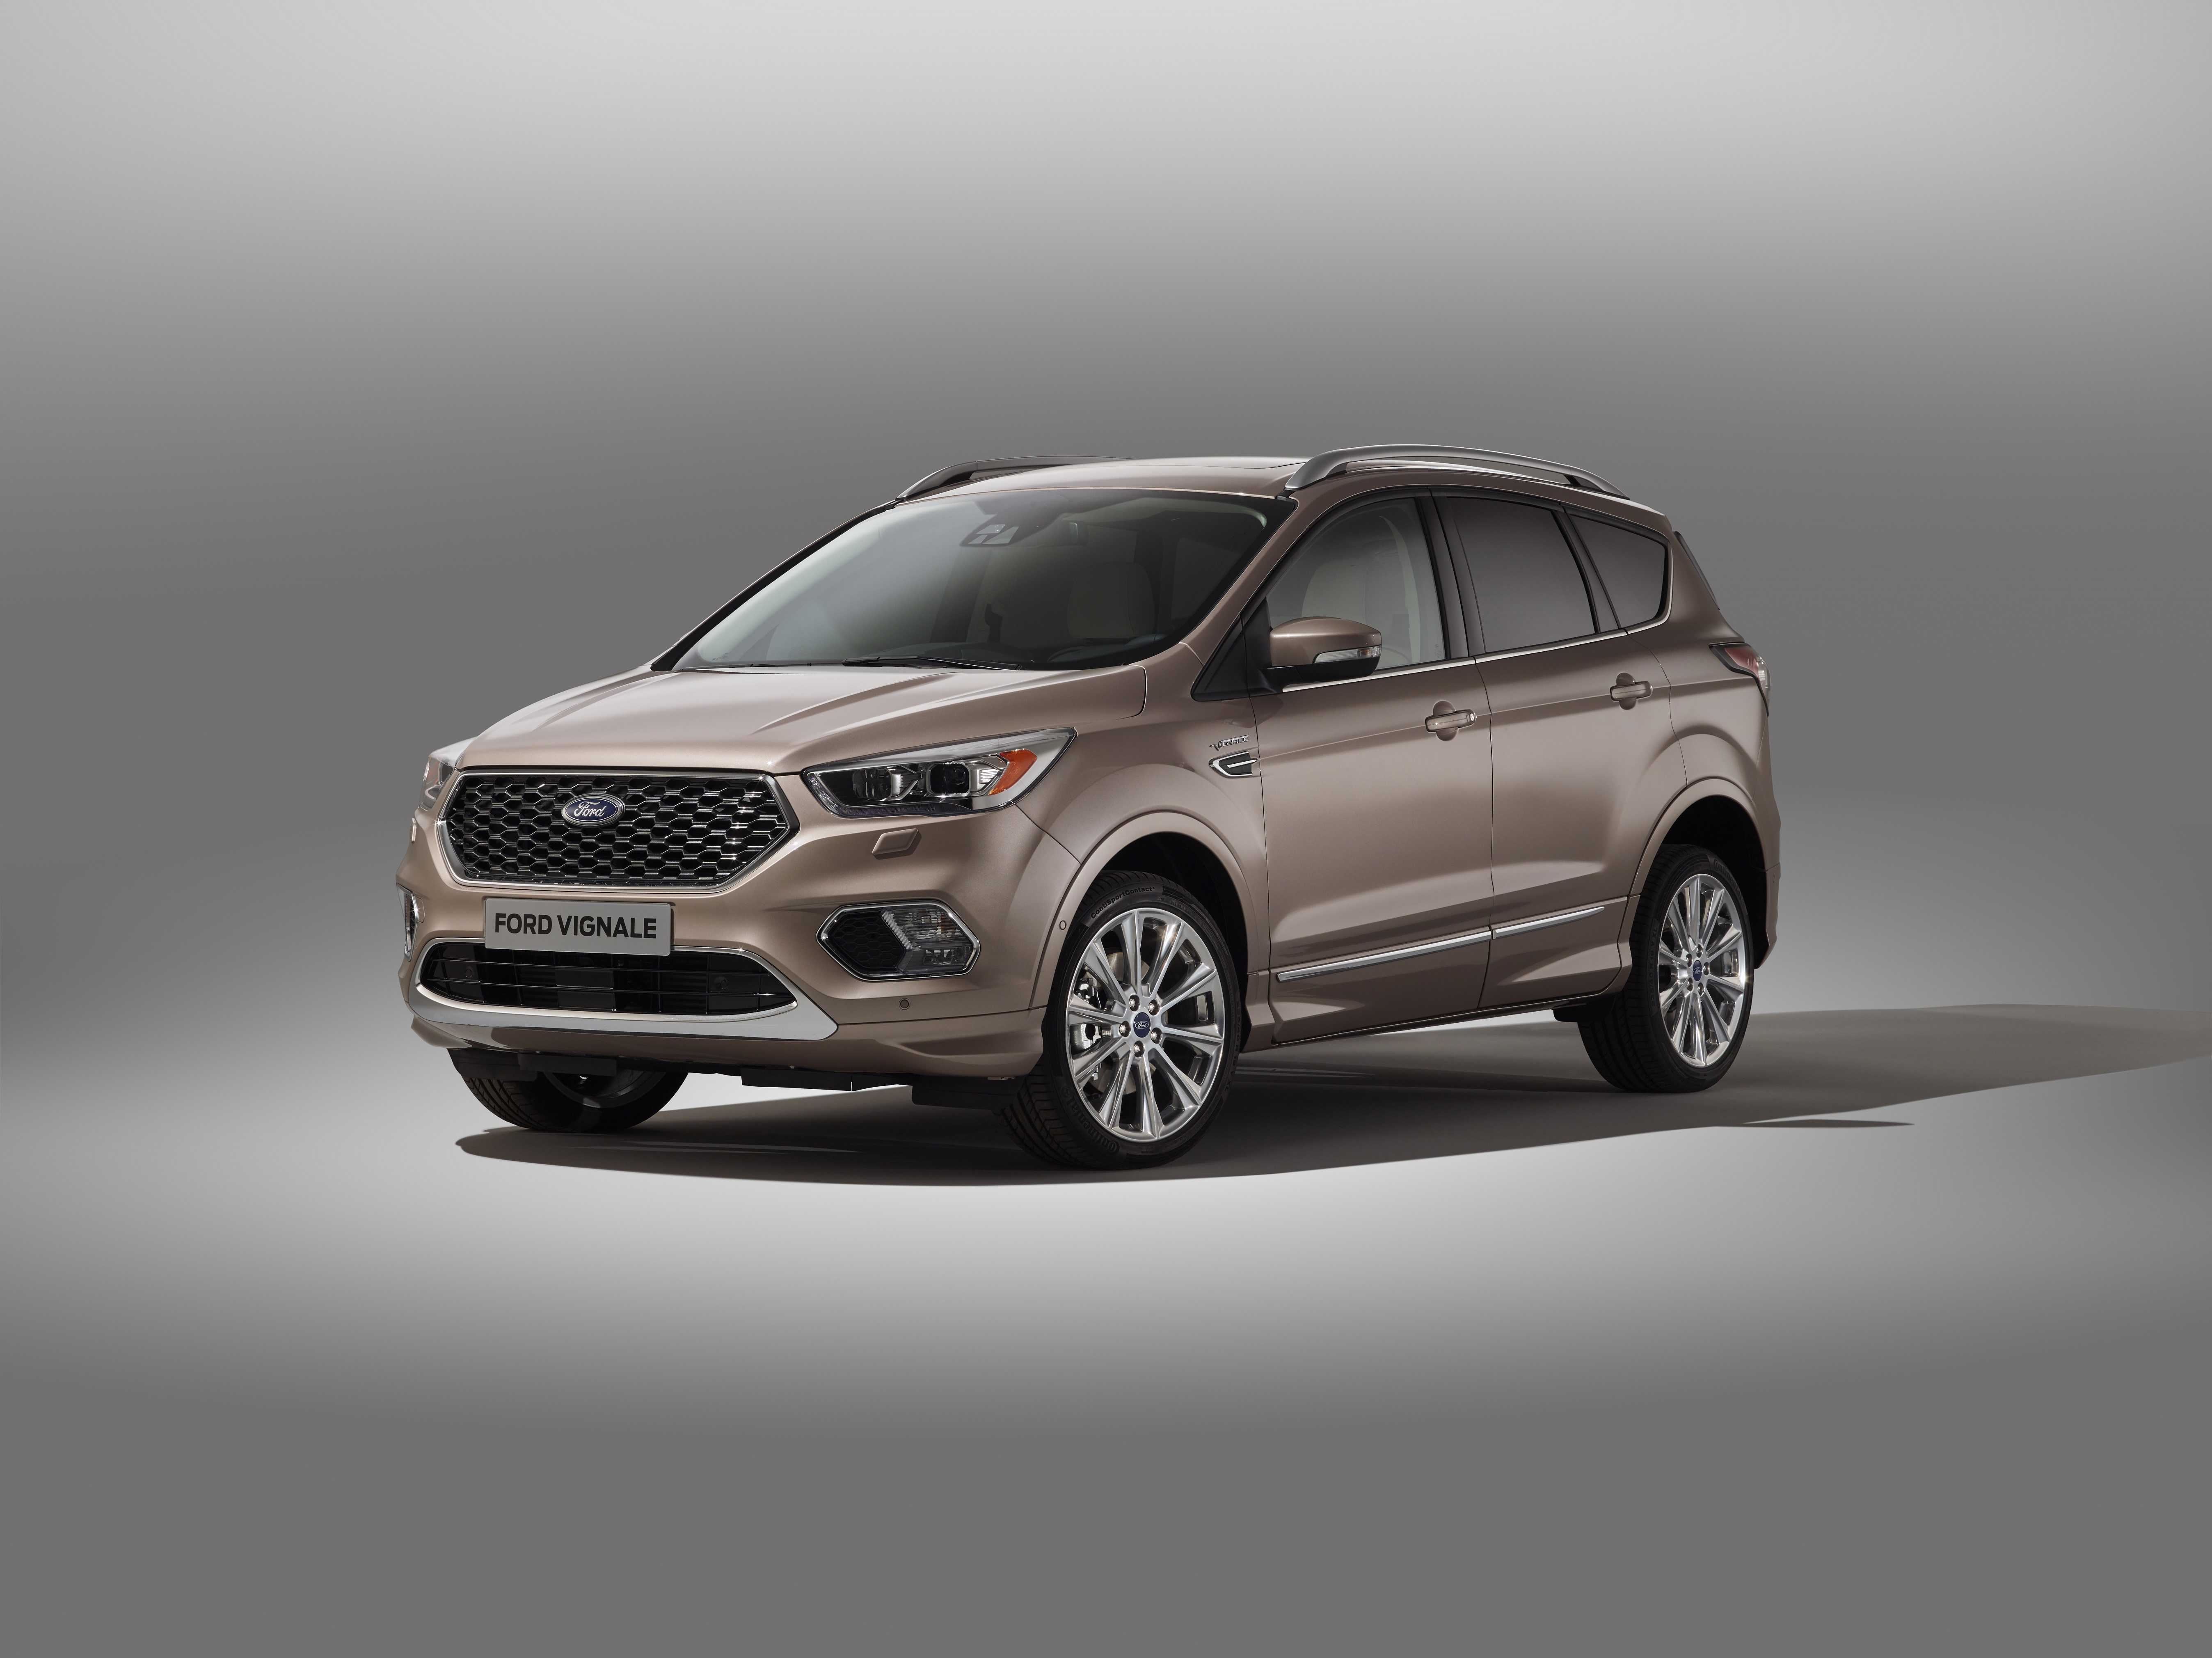 ford pr sentiert neuen kuga vignale aufgewertetes suv mit exklusiven services presseportal. Black Bedroom Furniture Sets. Home Design Ideas